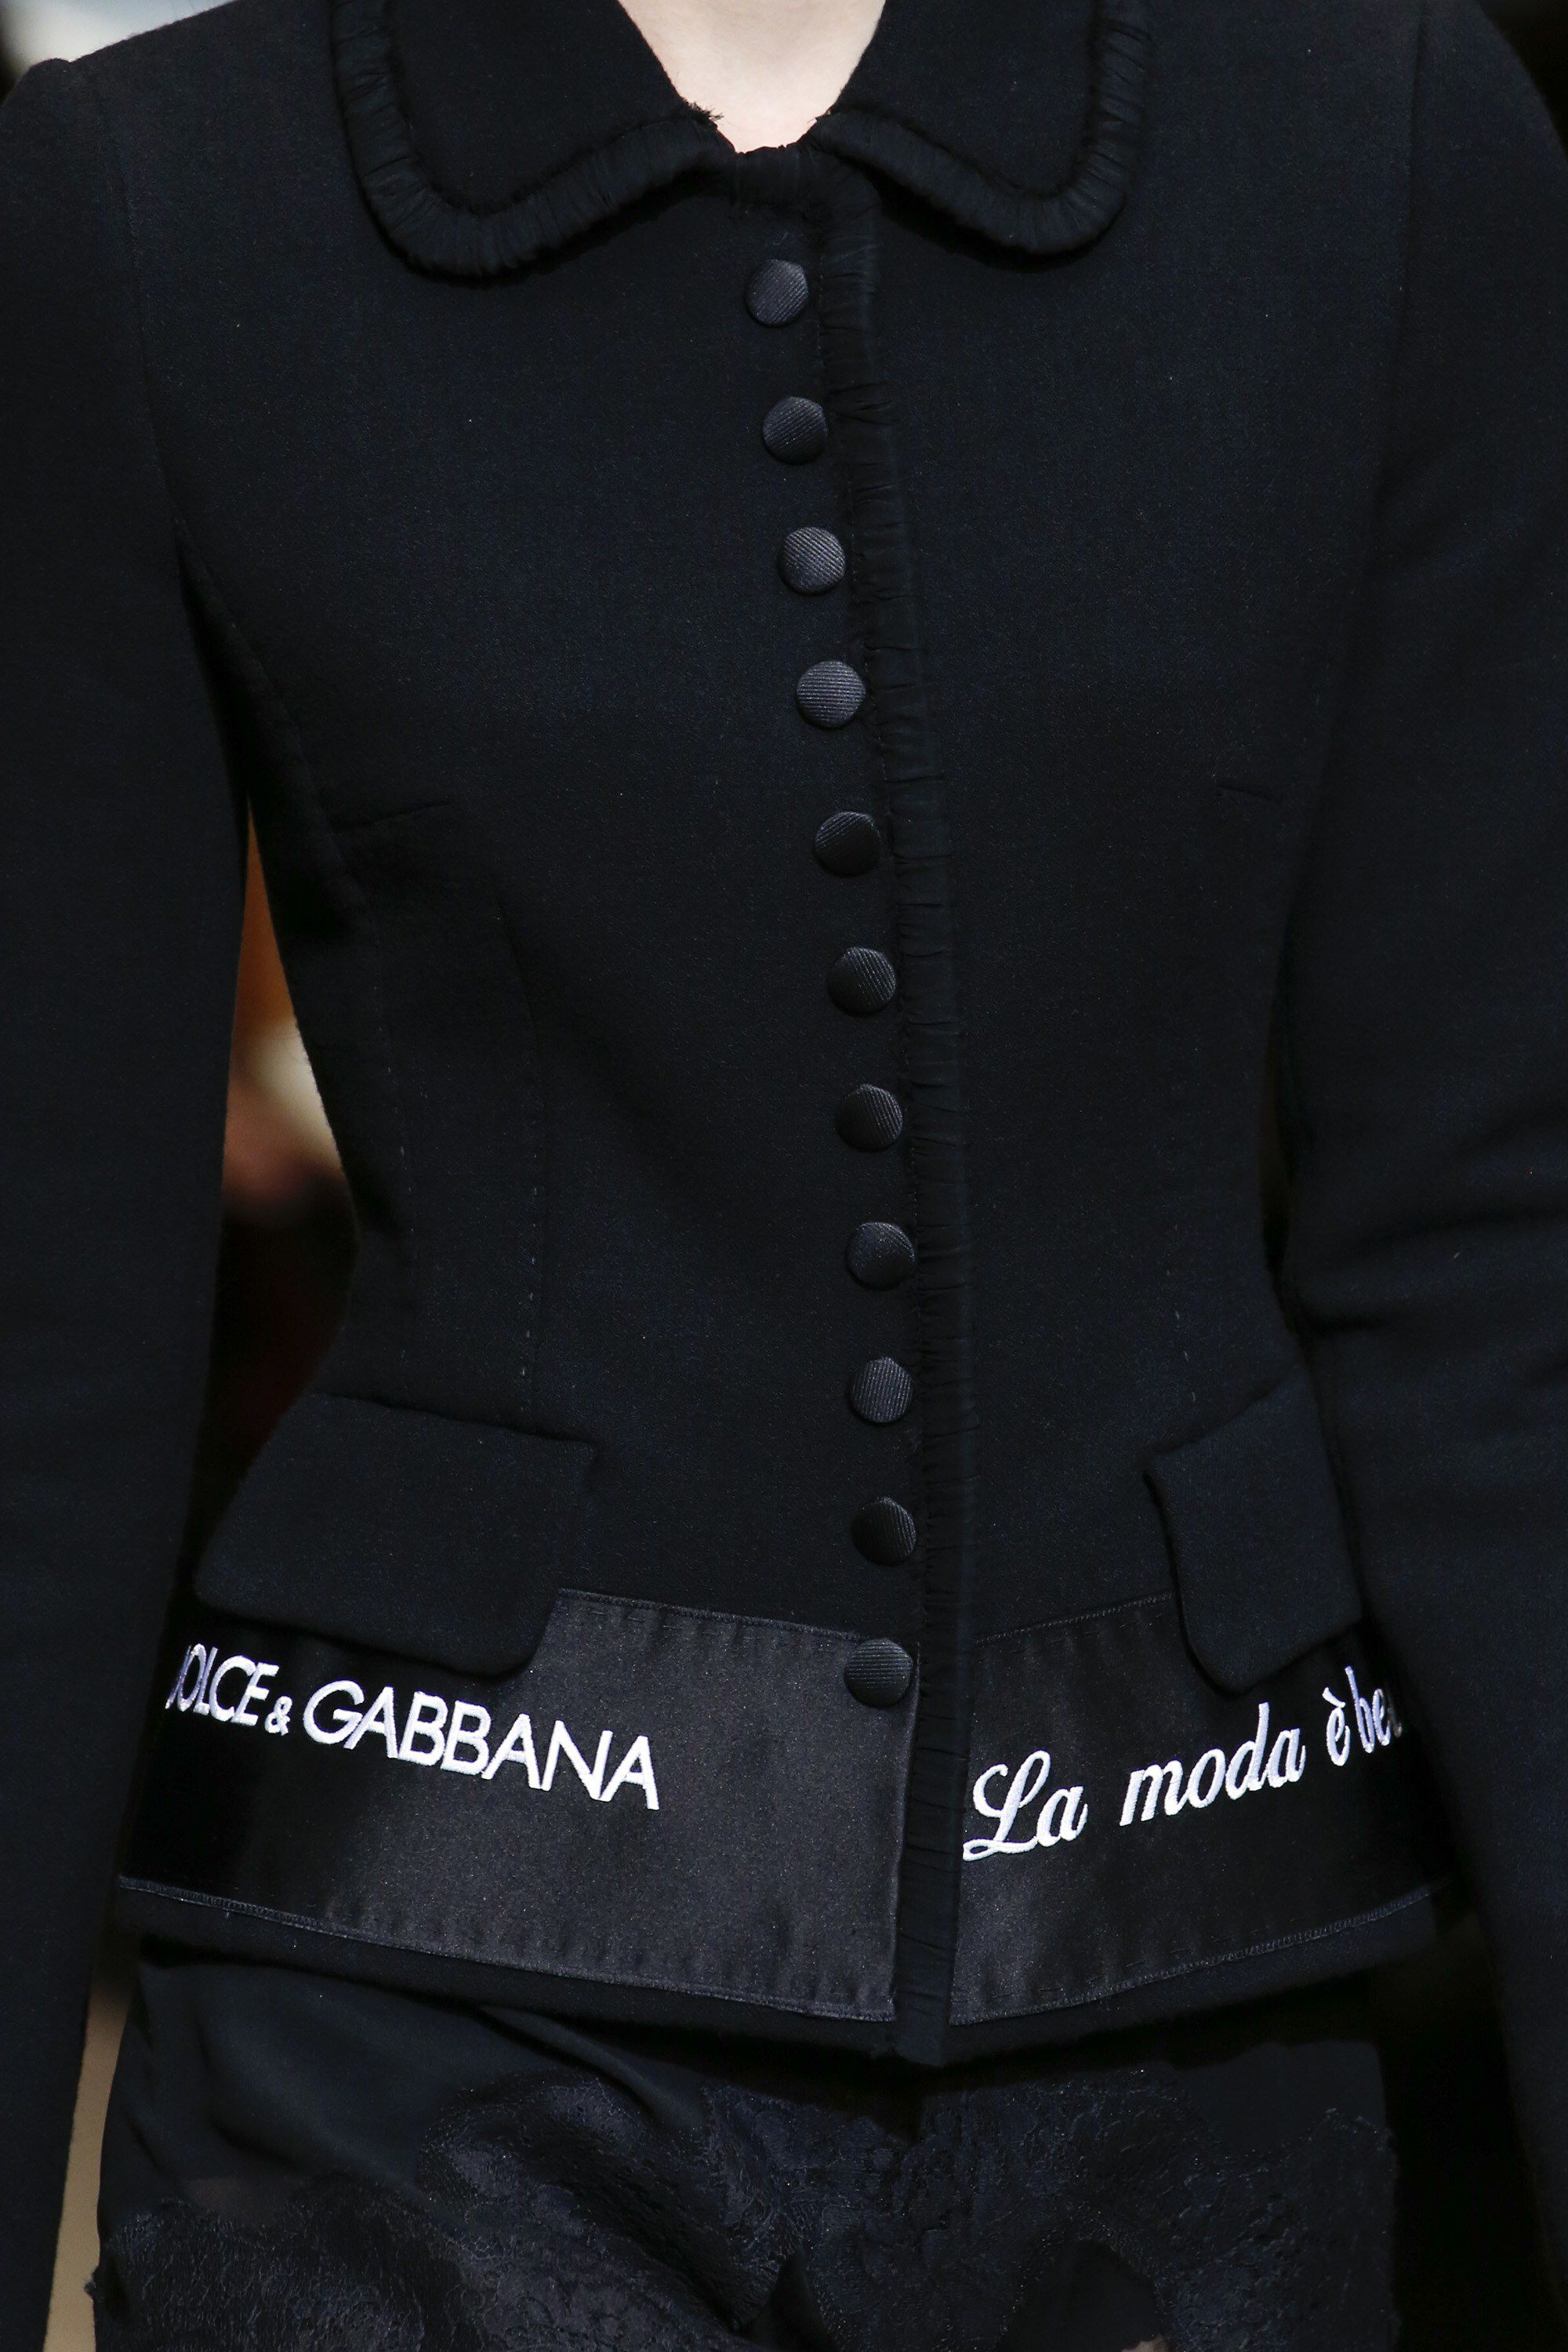 Fall Dolce Show Ready Gabbana amp; Wear To Fashion Details 2018 UxTqEaxwF